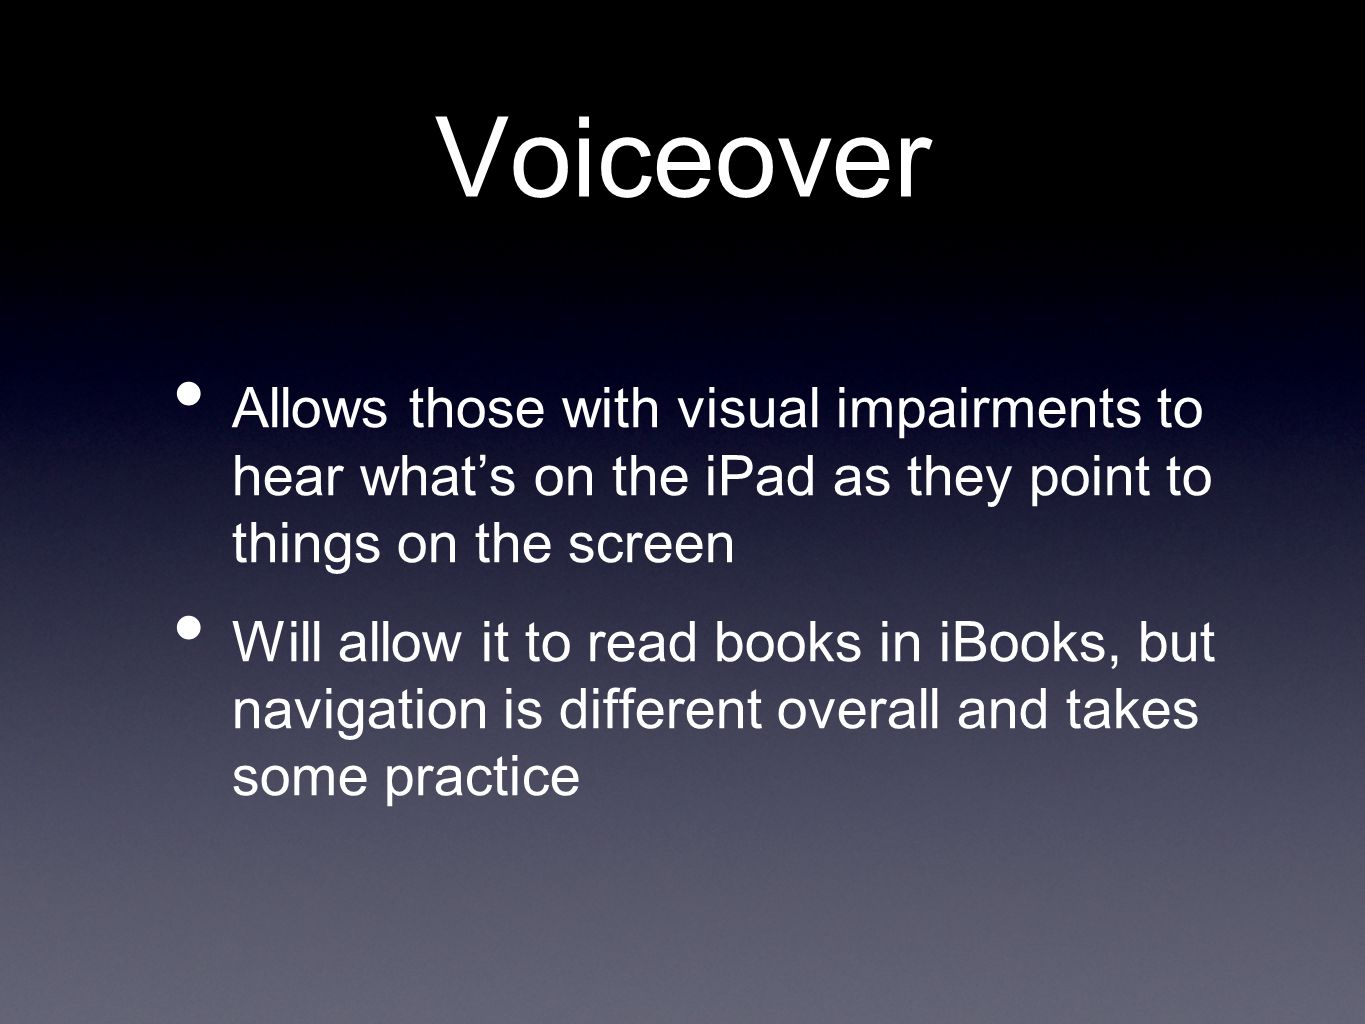 Voiceover Allows those with visual impairments to hear what's on the iPad as they point to things on the screen Will allow it to read books in iBooks, but navigation is different overall and takes some practice